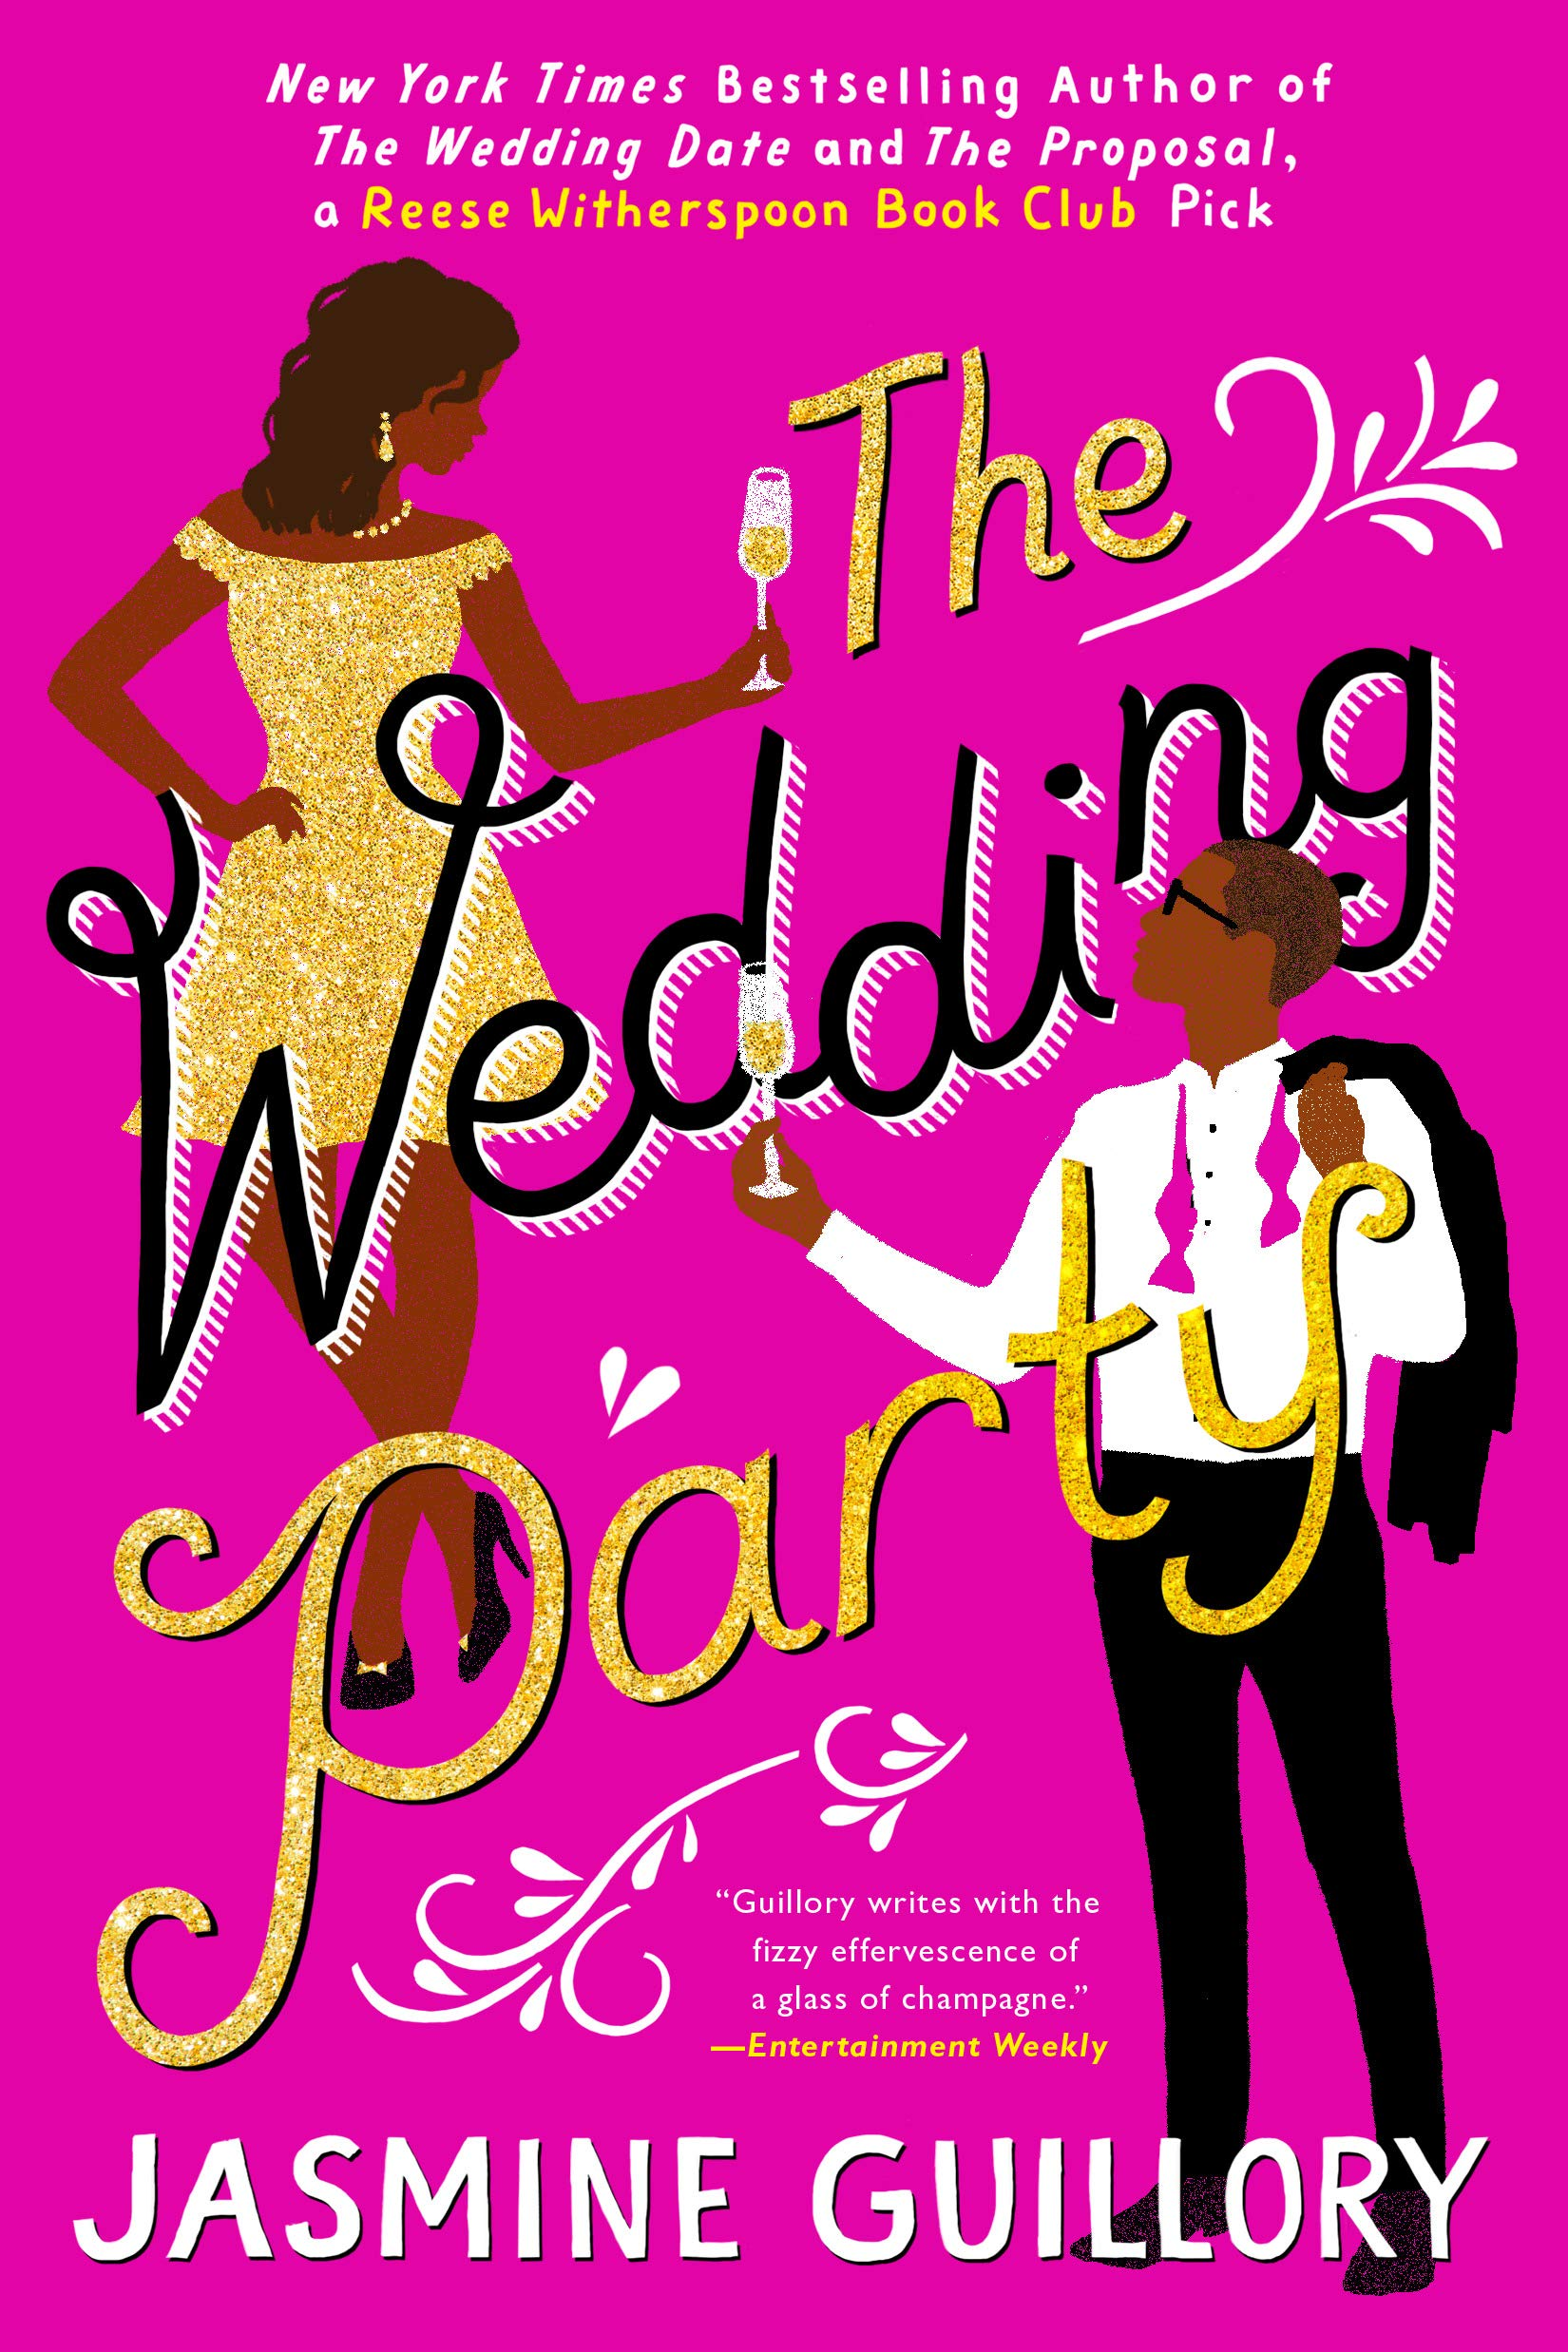 The Wedding Party by Jasmine Guillory - Rating: 3/5The third installment in Jasmine Guillory's fun and steamy The Wedding Date series centers around Alexa's (main character of the first book) two best friends Maddie and Theo. They might be Alexa's best friends, but they themselves are not. Maddie finds Theo pretentious and Theo can't ever seem to take Maddie seriously, but of course one night they share a kiss that was a complete mistake. At least so they thought. I think you can see where things go from here. Like the other books in the series, it's fun, steamy, but well written. The reason I gave it only three stars out of five is because it does seem to follow the same pattern as the first two which takes the fun out of any sort of predicting mid-read. A fourth book is debuting in October called Royal Holiday, so of course I'm ecstatic about it.Is it a must read? Alone, no, but the series is really great as a whole so yes all three are a must read!